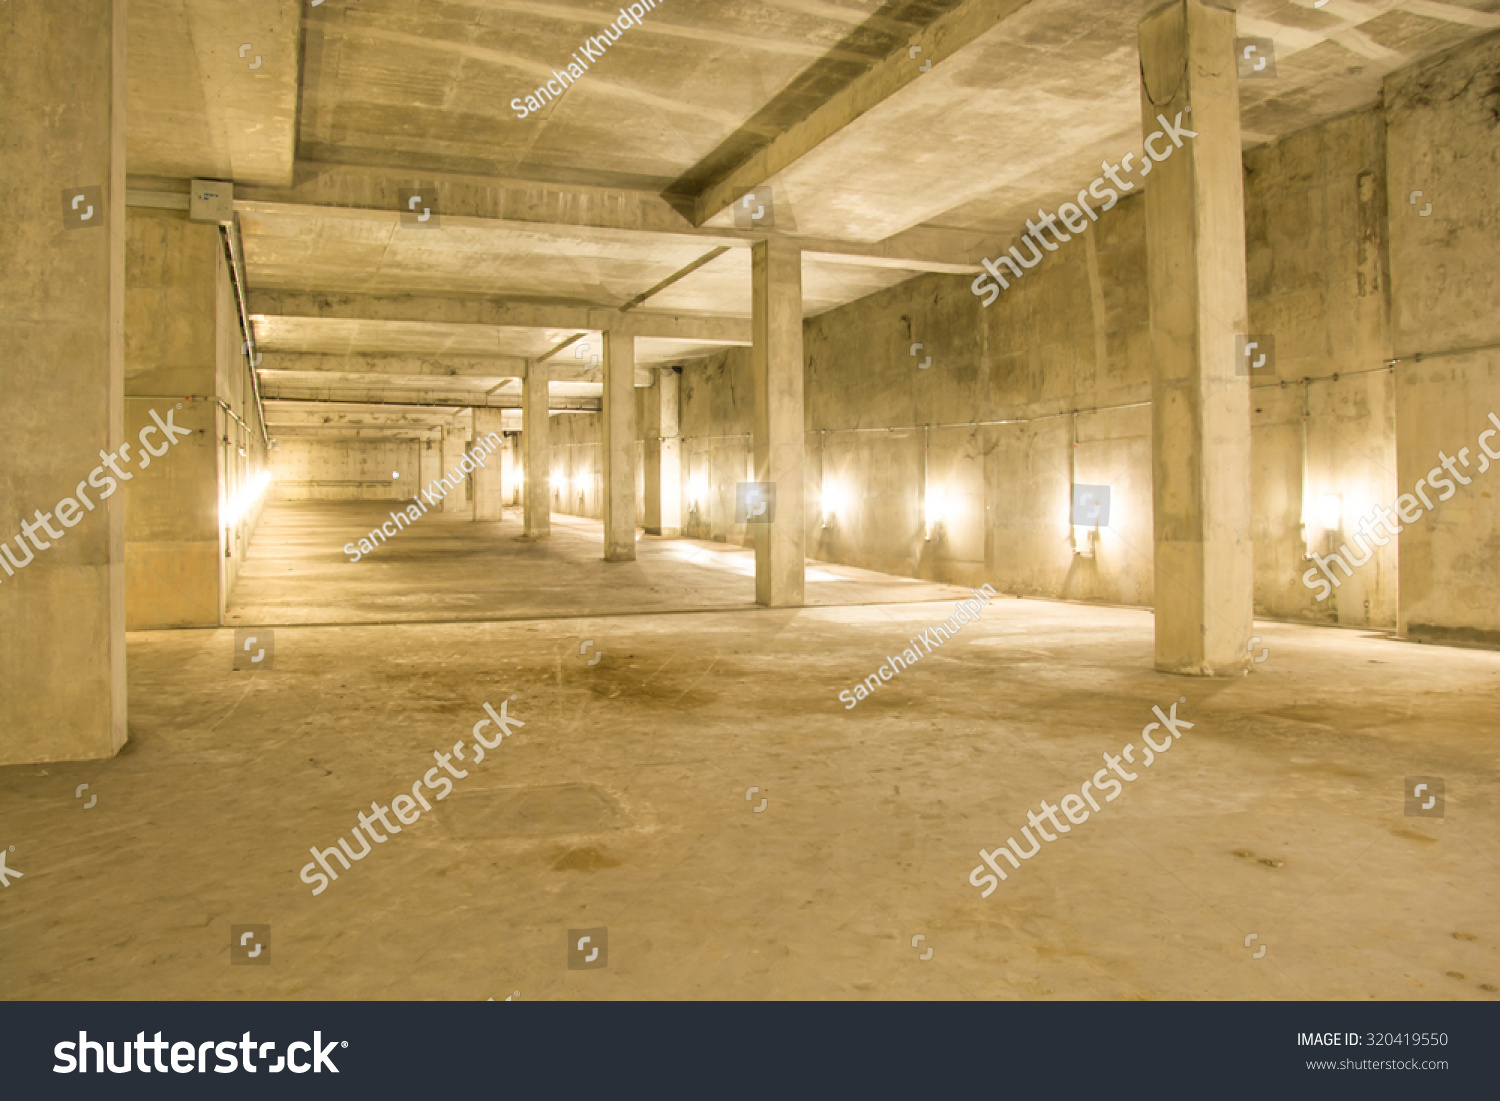 Empty industrial garage room interior with concrete floor and wall ...